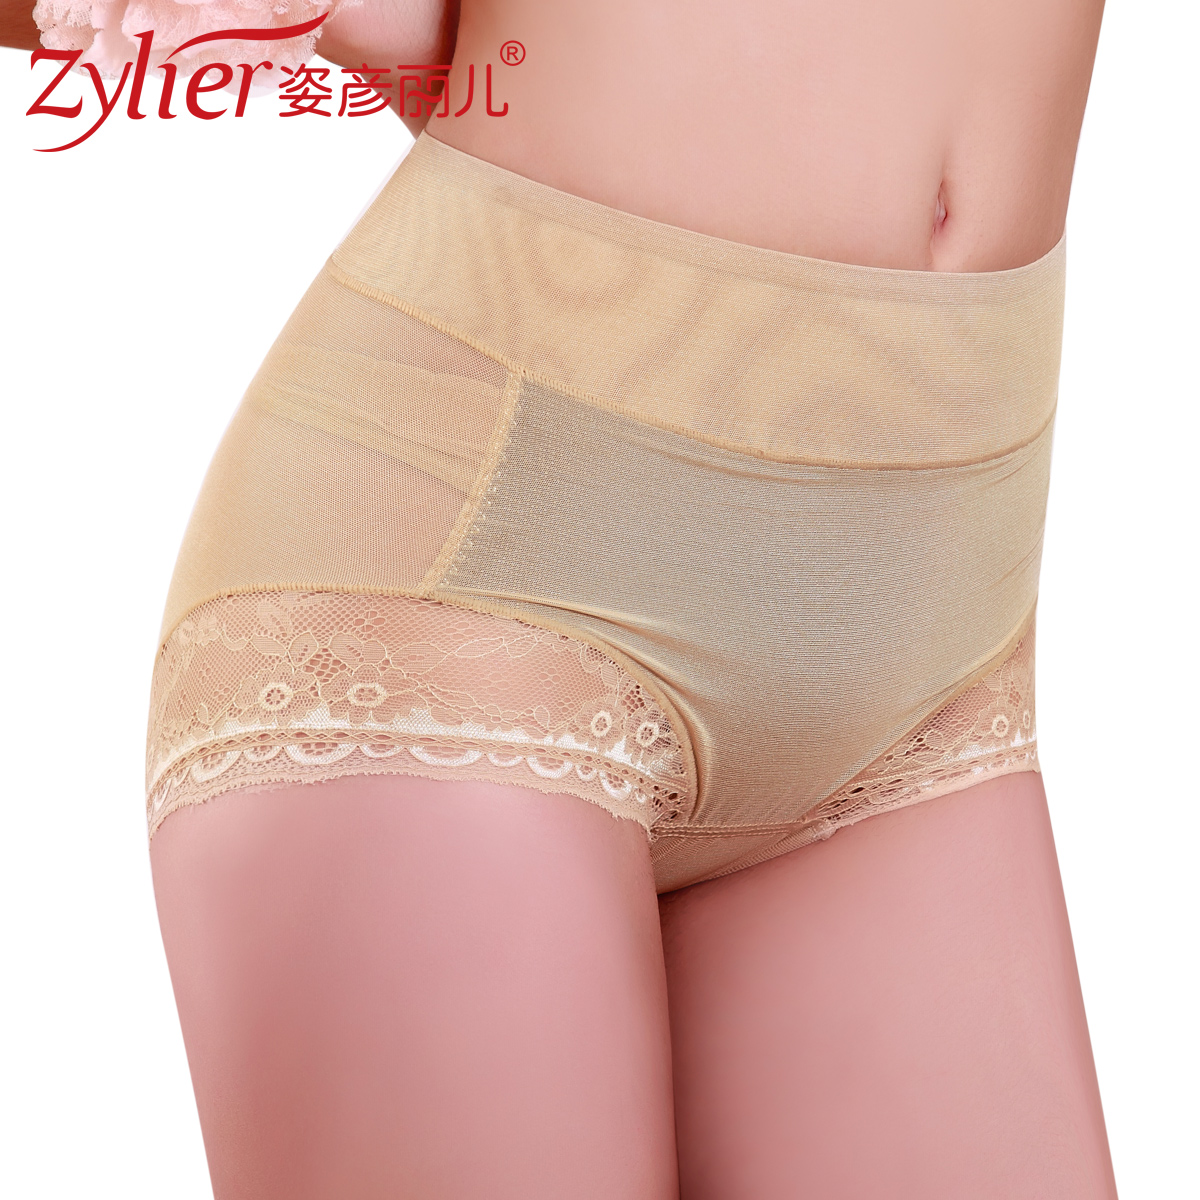 Body shaping thin magnetic therapy mid waist abdomen drawing butt-lifting lace decoration body shaping pants panties sk146